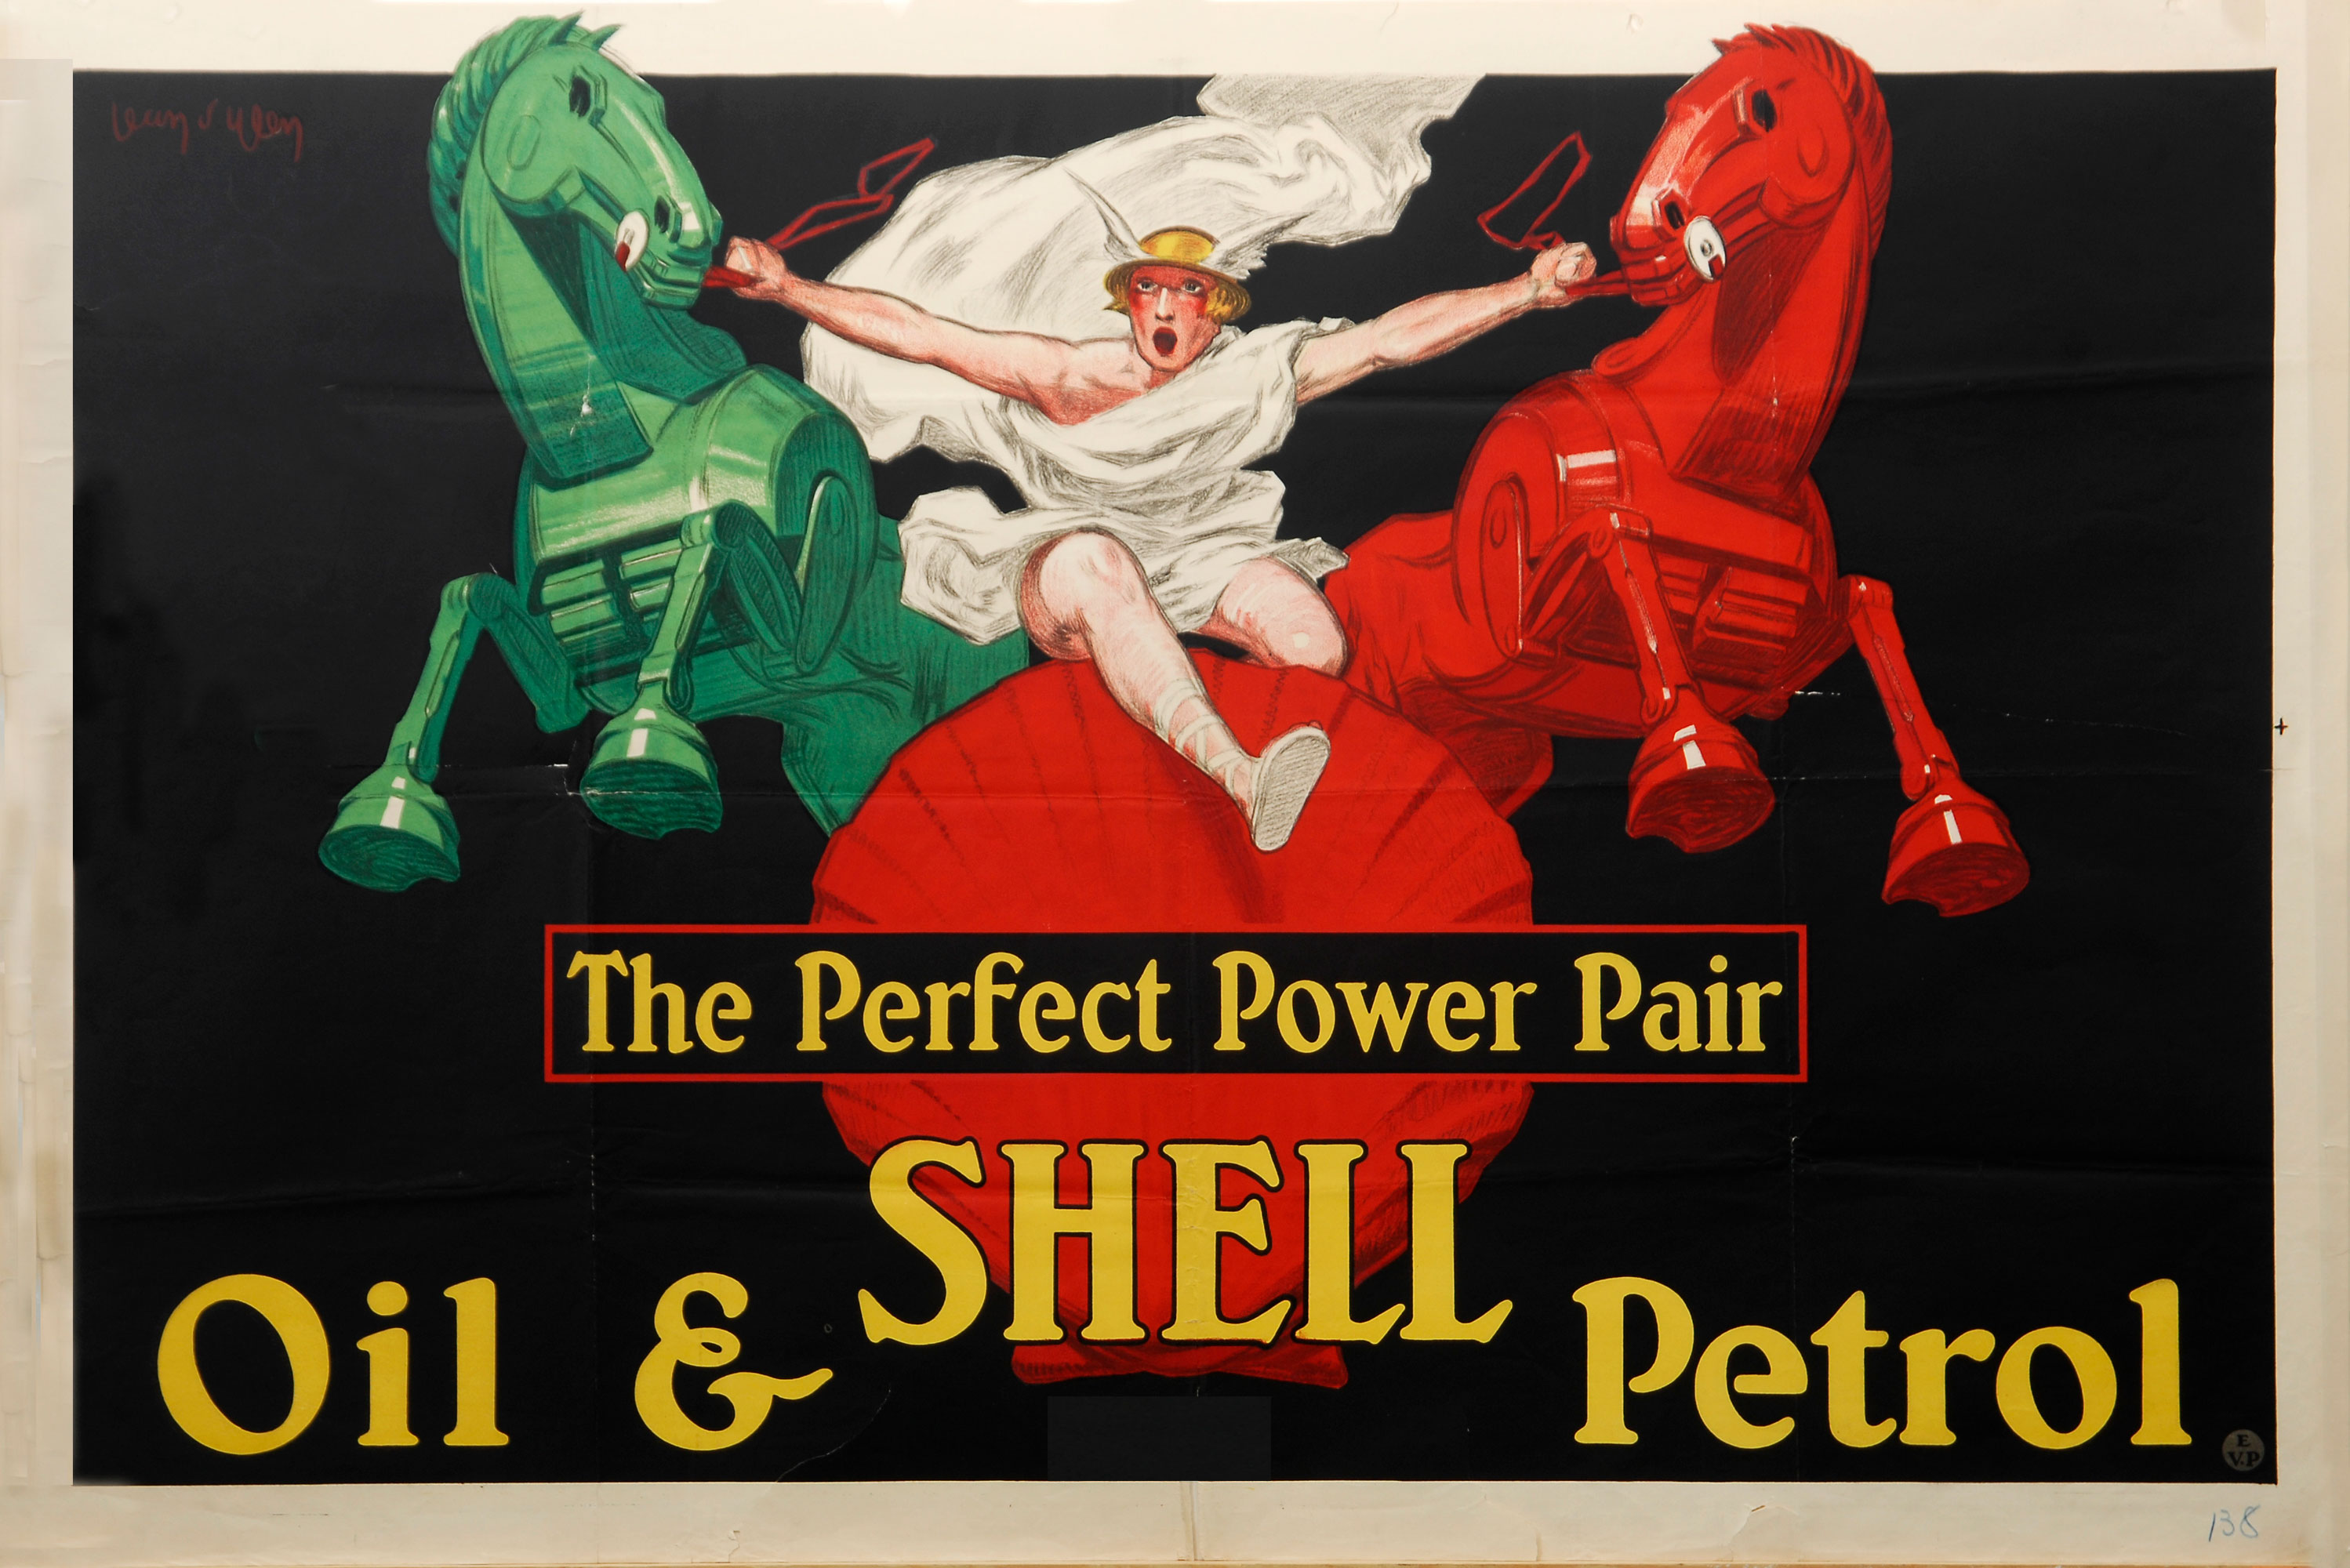 """Shell poster number 138, The perfect power pair by Jean d'Ylen (1926). Painting of Roman character in a toga and winged helmet, holding back a pair of trojan looking horses, one green and one red. Caption reads; """"The Perfect Power Pair, Oil and Shell Petrol."""""""